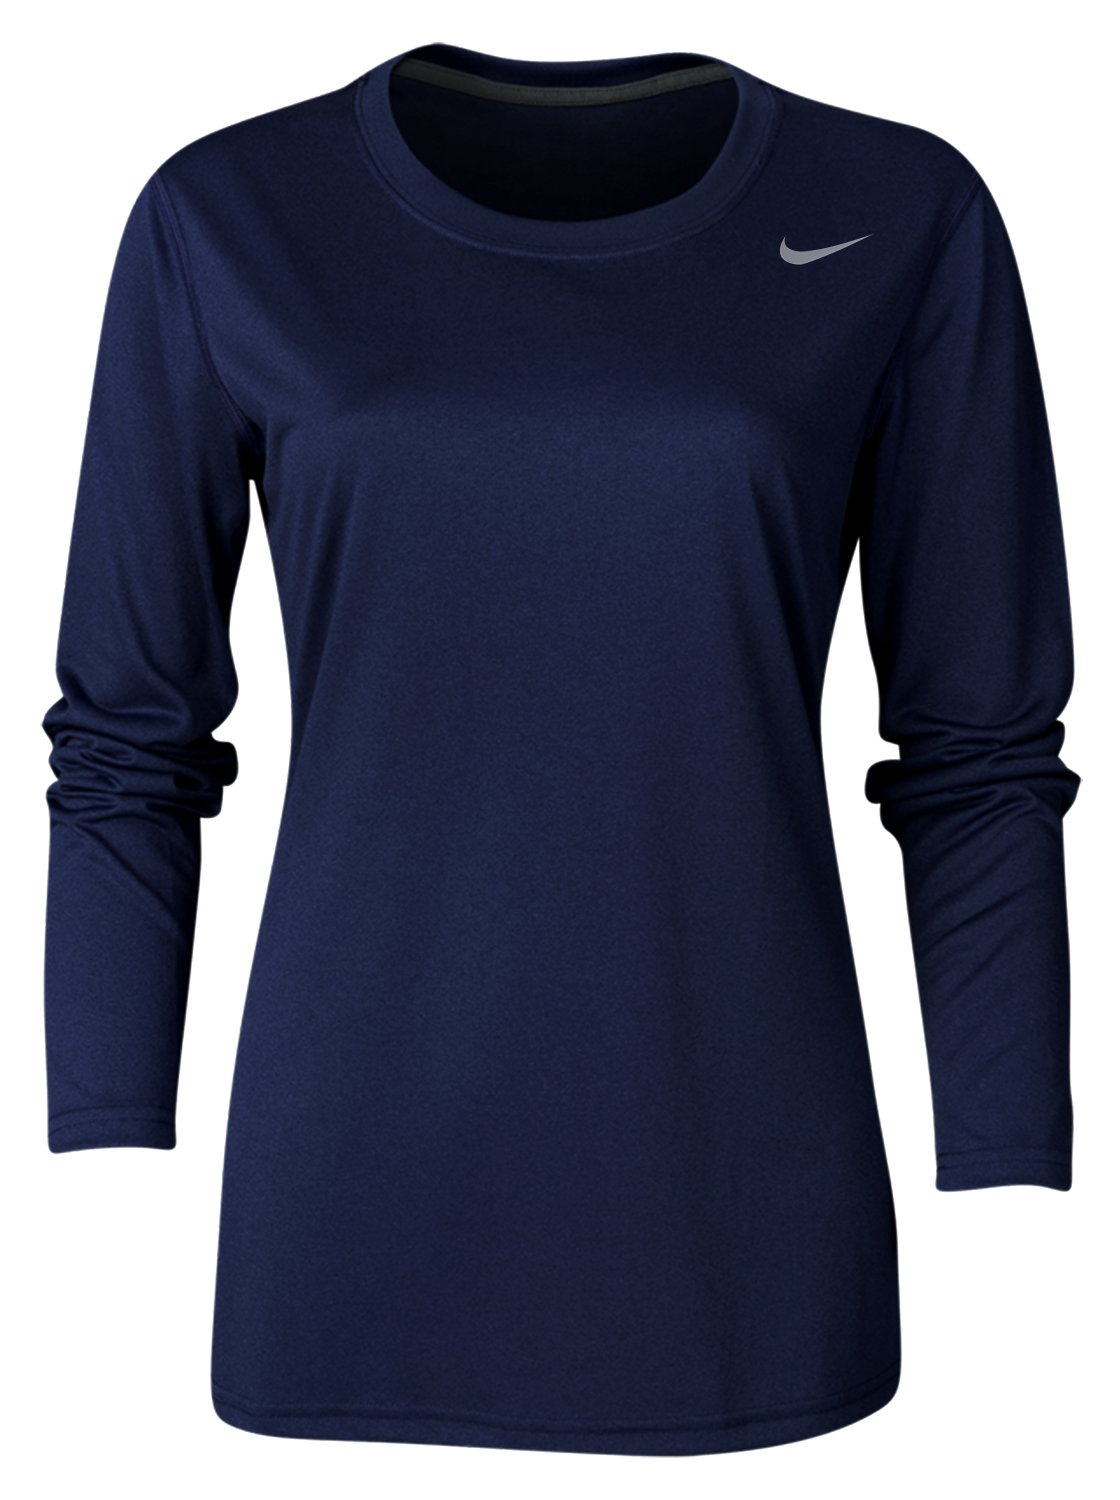 e7f6d0c93d87e Galleon - Nike Womens Dri-Fit Fitness Workout T-Shirt Navy S